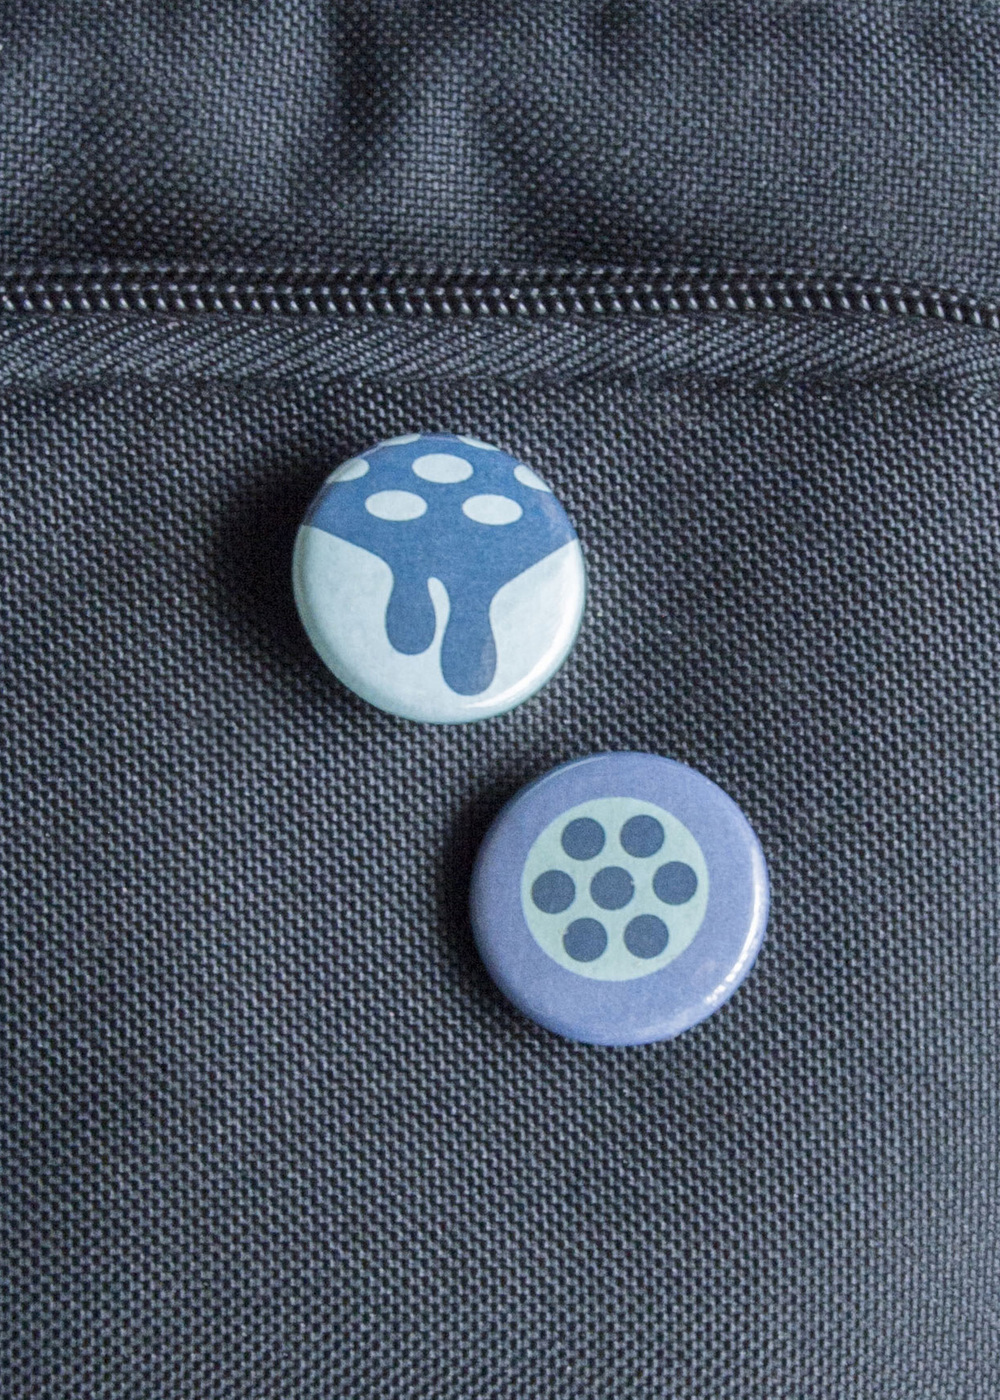 Buttons that were made and placed on a backpack.